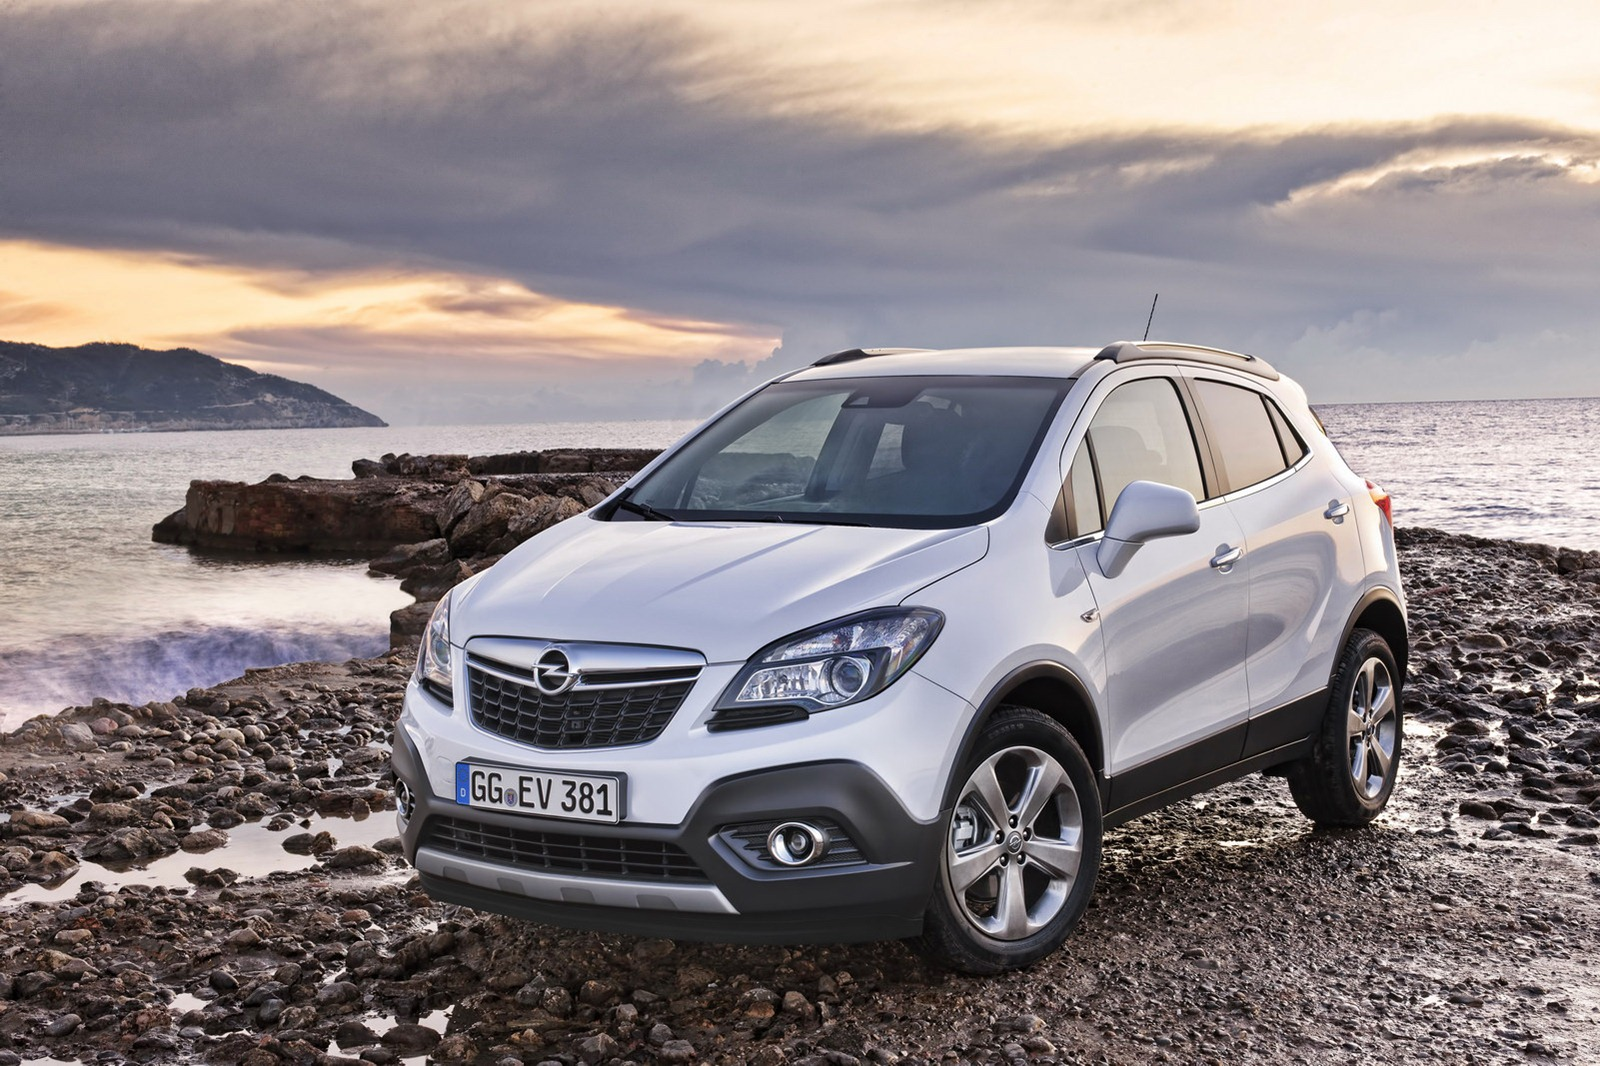 Opel Mokka review prices sizes and datasheet Wallpapers HD